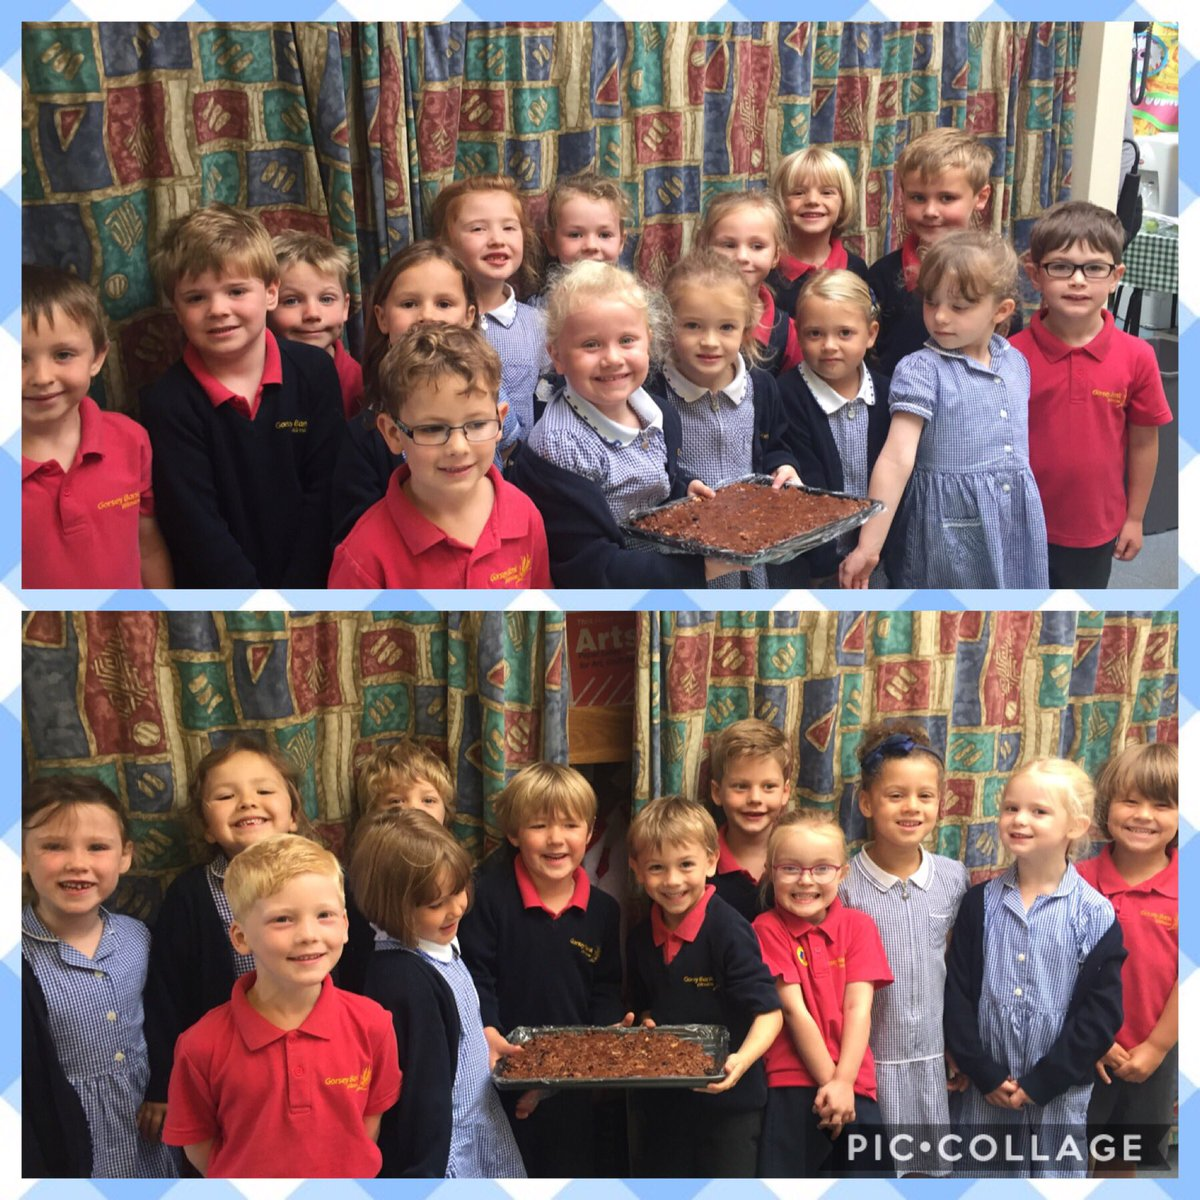 test Twitter Media - We had a great time making Chocolate Fridge cake today. We can't wait to eat it at our Teddy Bears Picnic on Monday #gorseyrec https://t.co/WU40D1Y5Bj